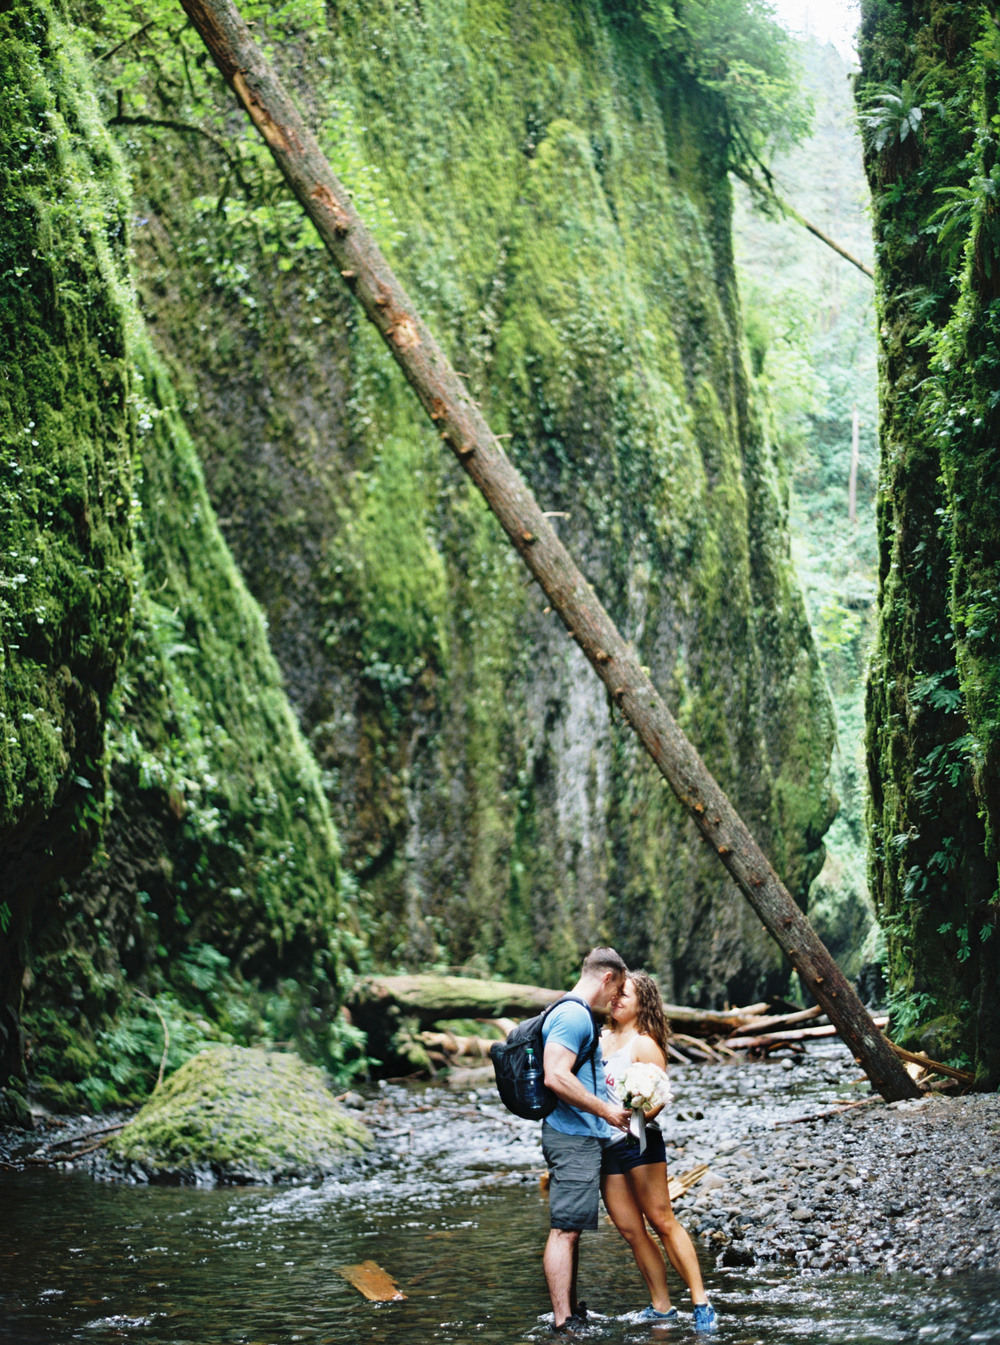 040OneontaGorge+Elopement+Photography+Videography+Oregon+OutliveCreative.jpg